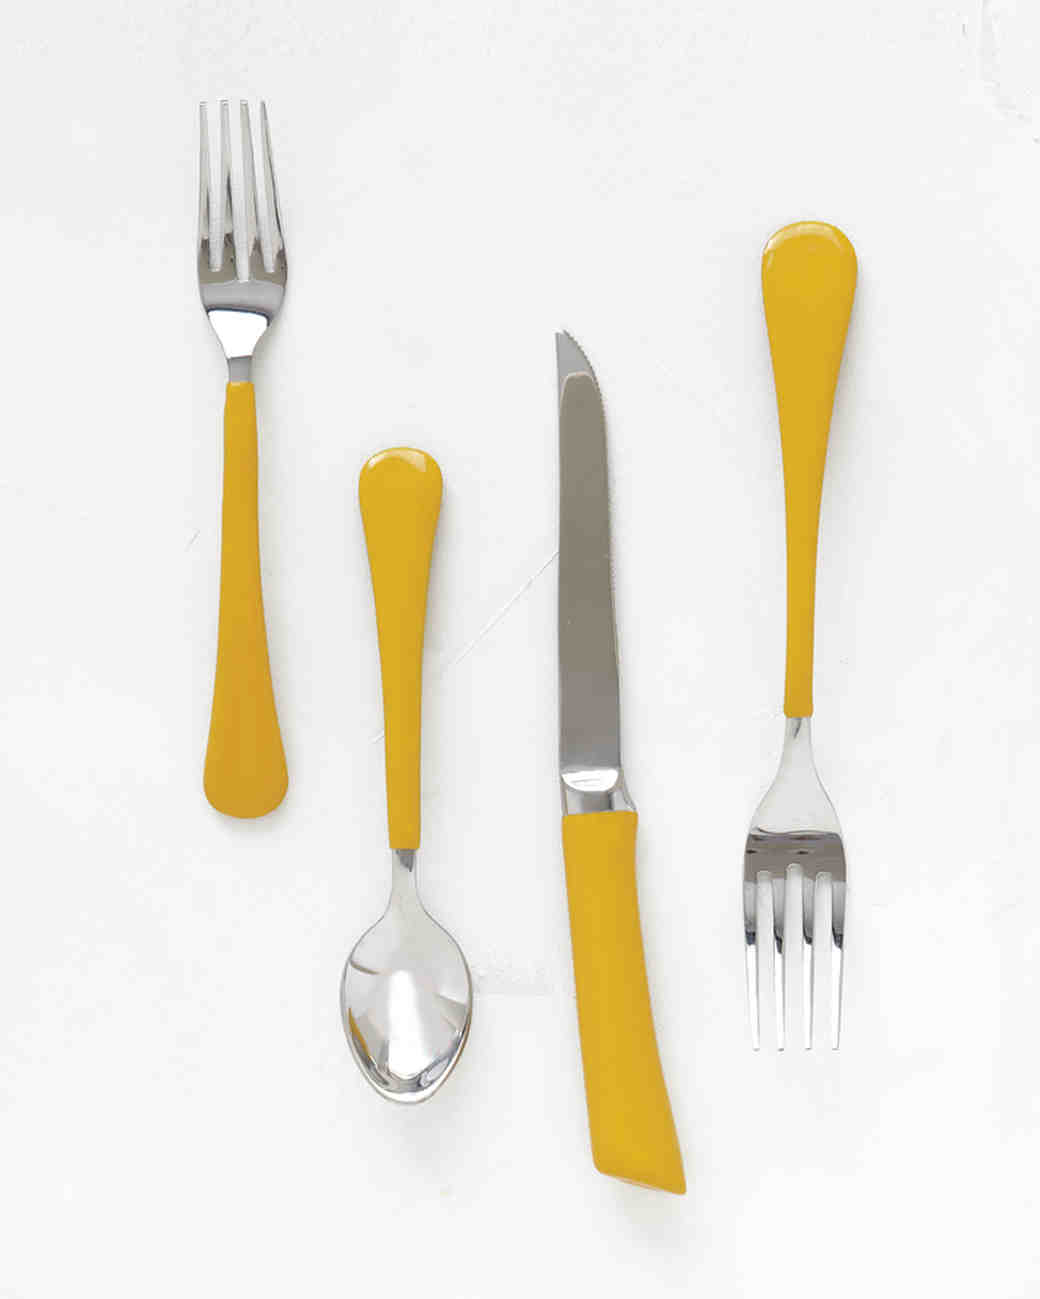 billy-flatware-mwd108187.jpg